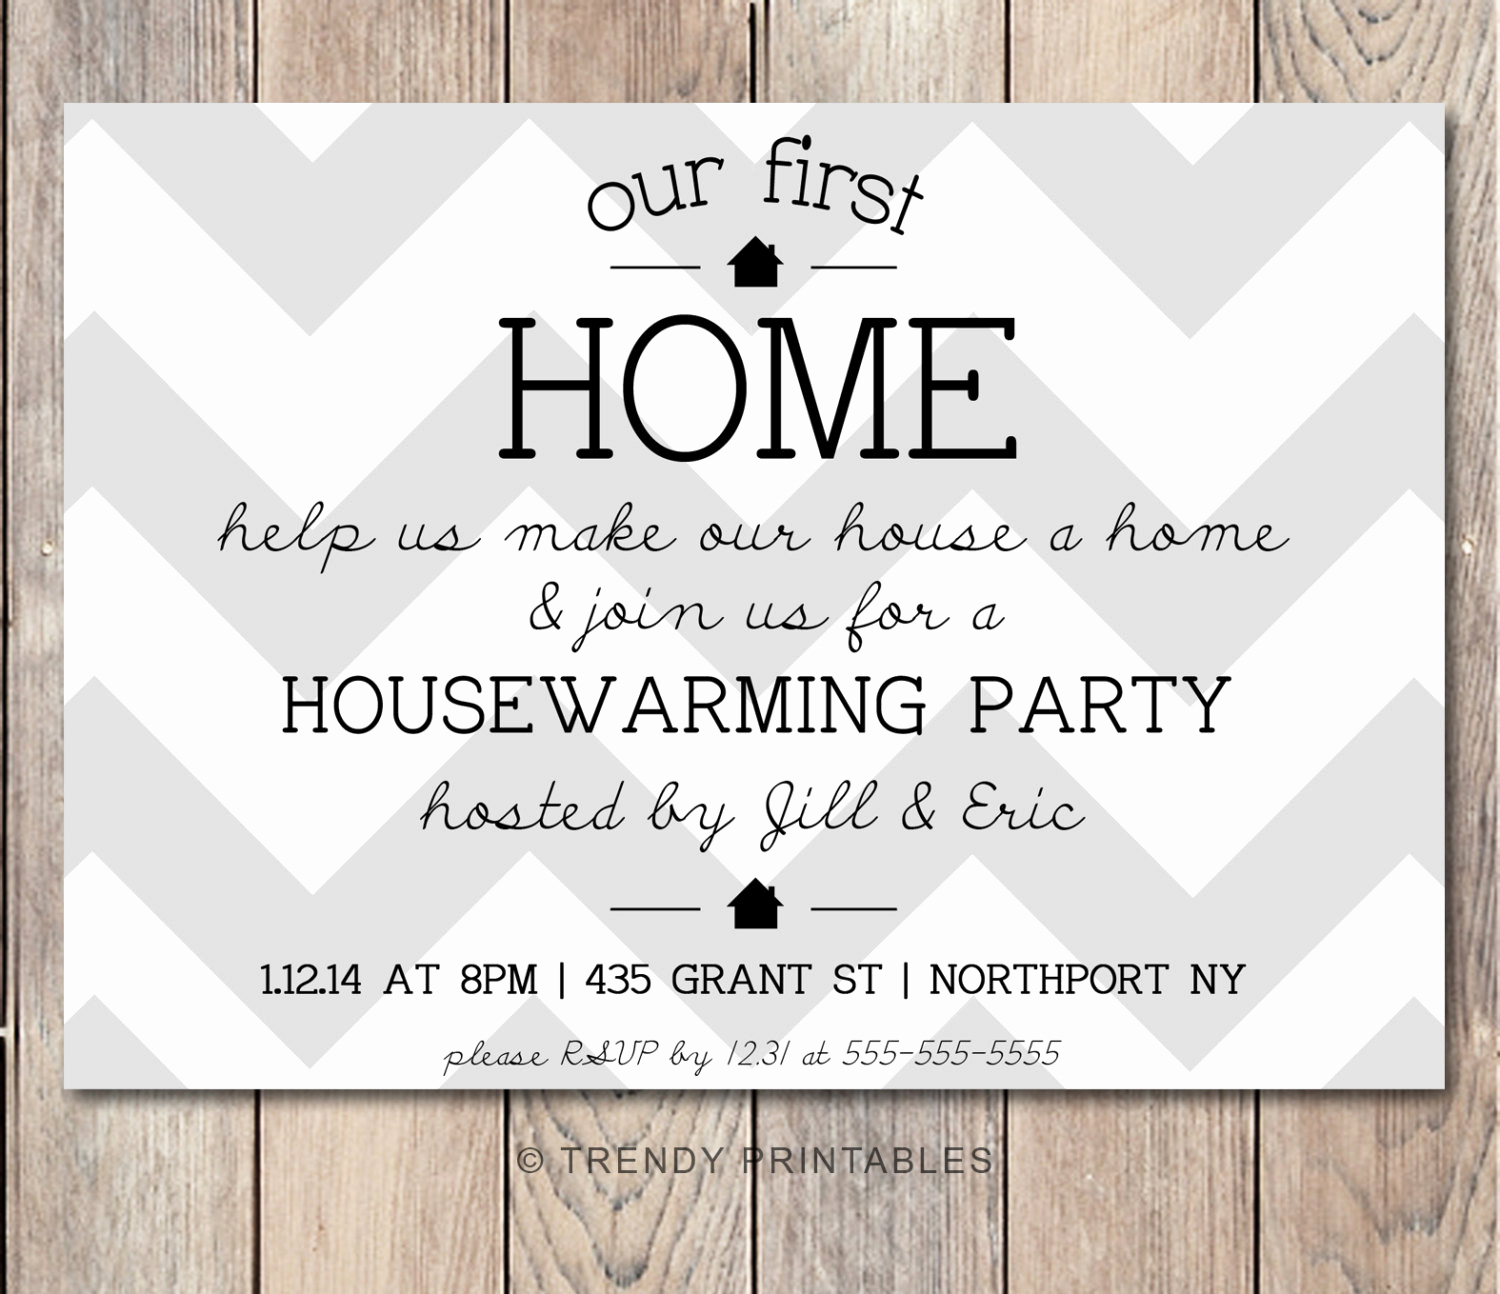 Housewarming Party Invitation Wording Luxury Housewarming Party Invitation Housewarming by Trendyprintables